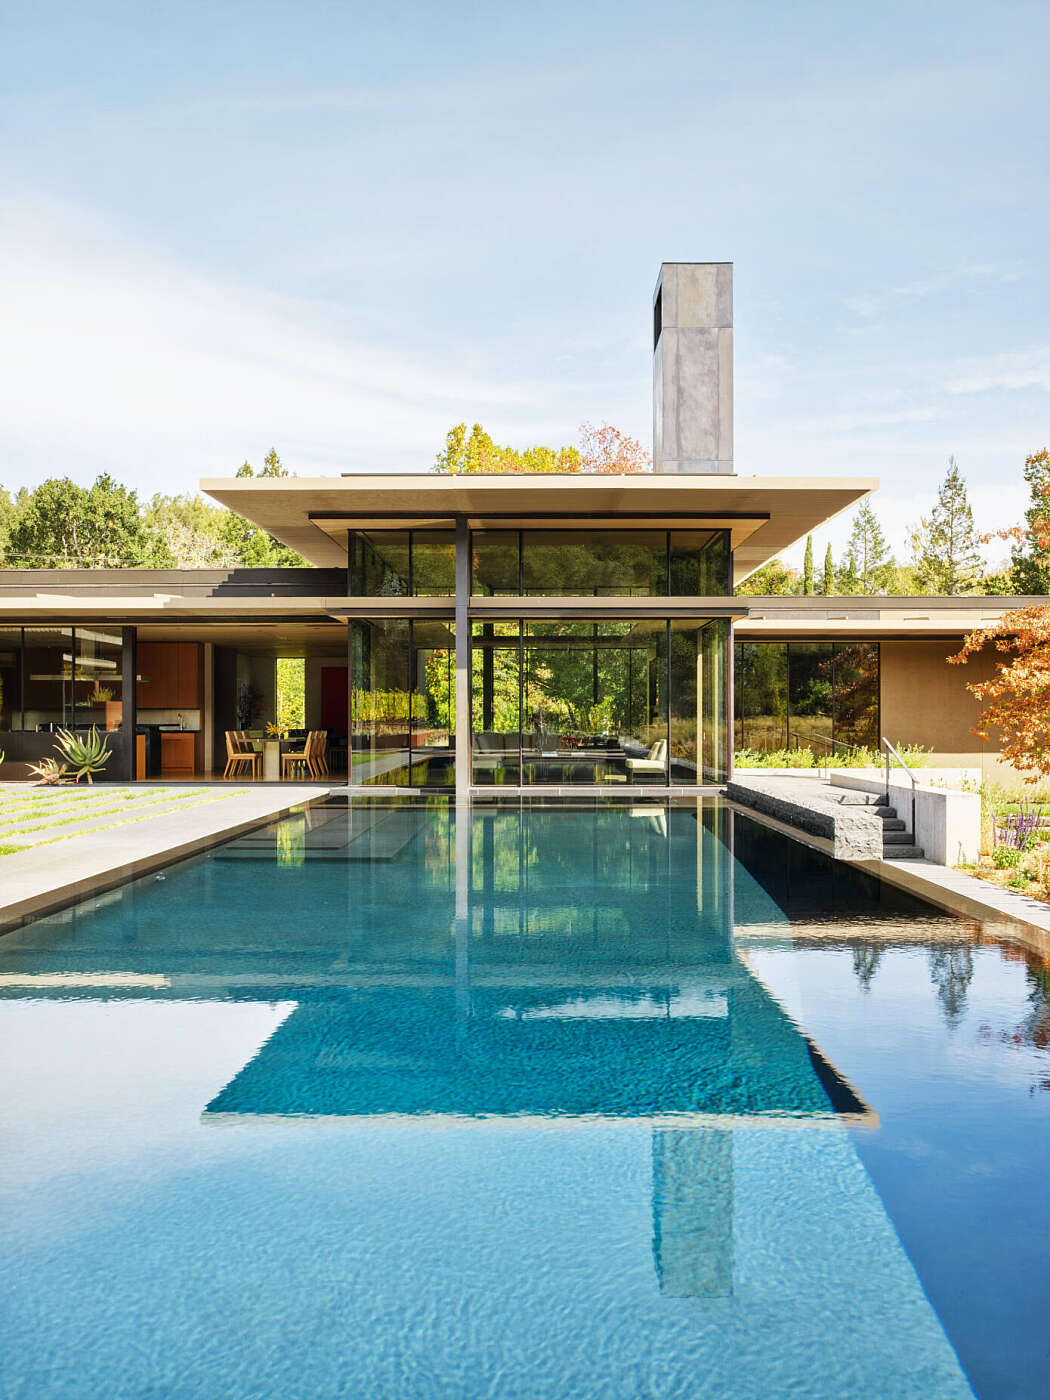 California Meadow House by Olson Kundig